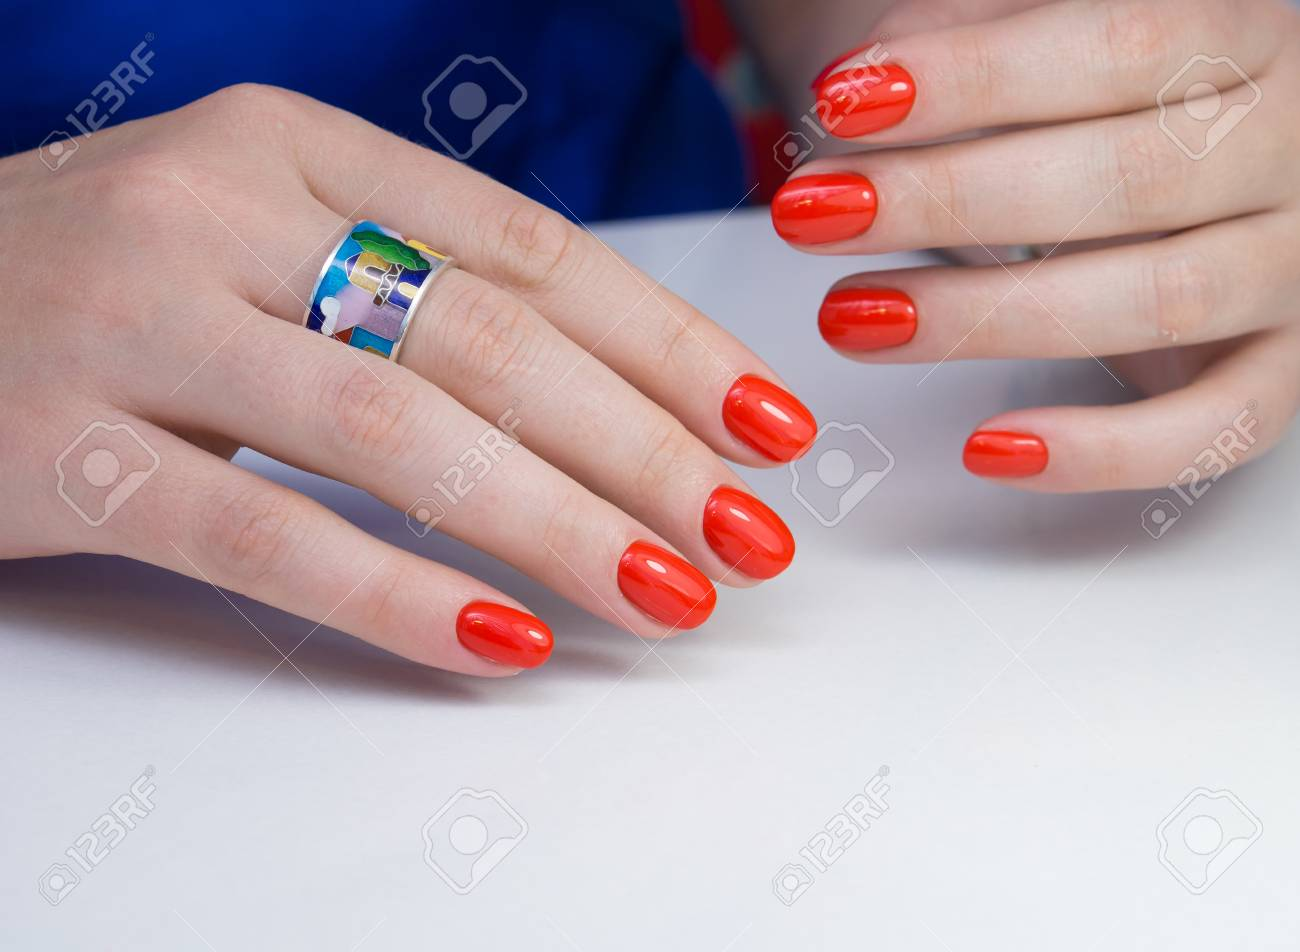 Beautiful natural nails and attractive manicure on women hands. - 92883694